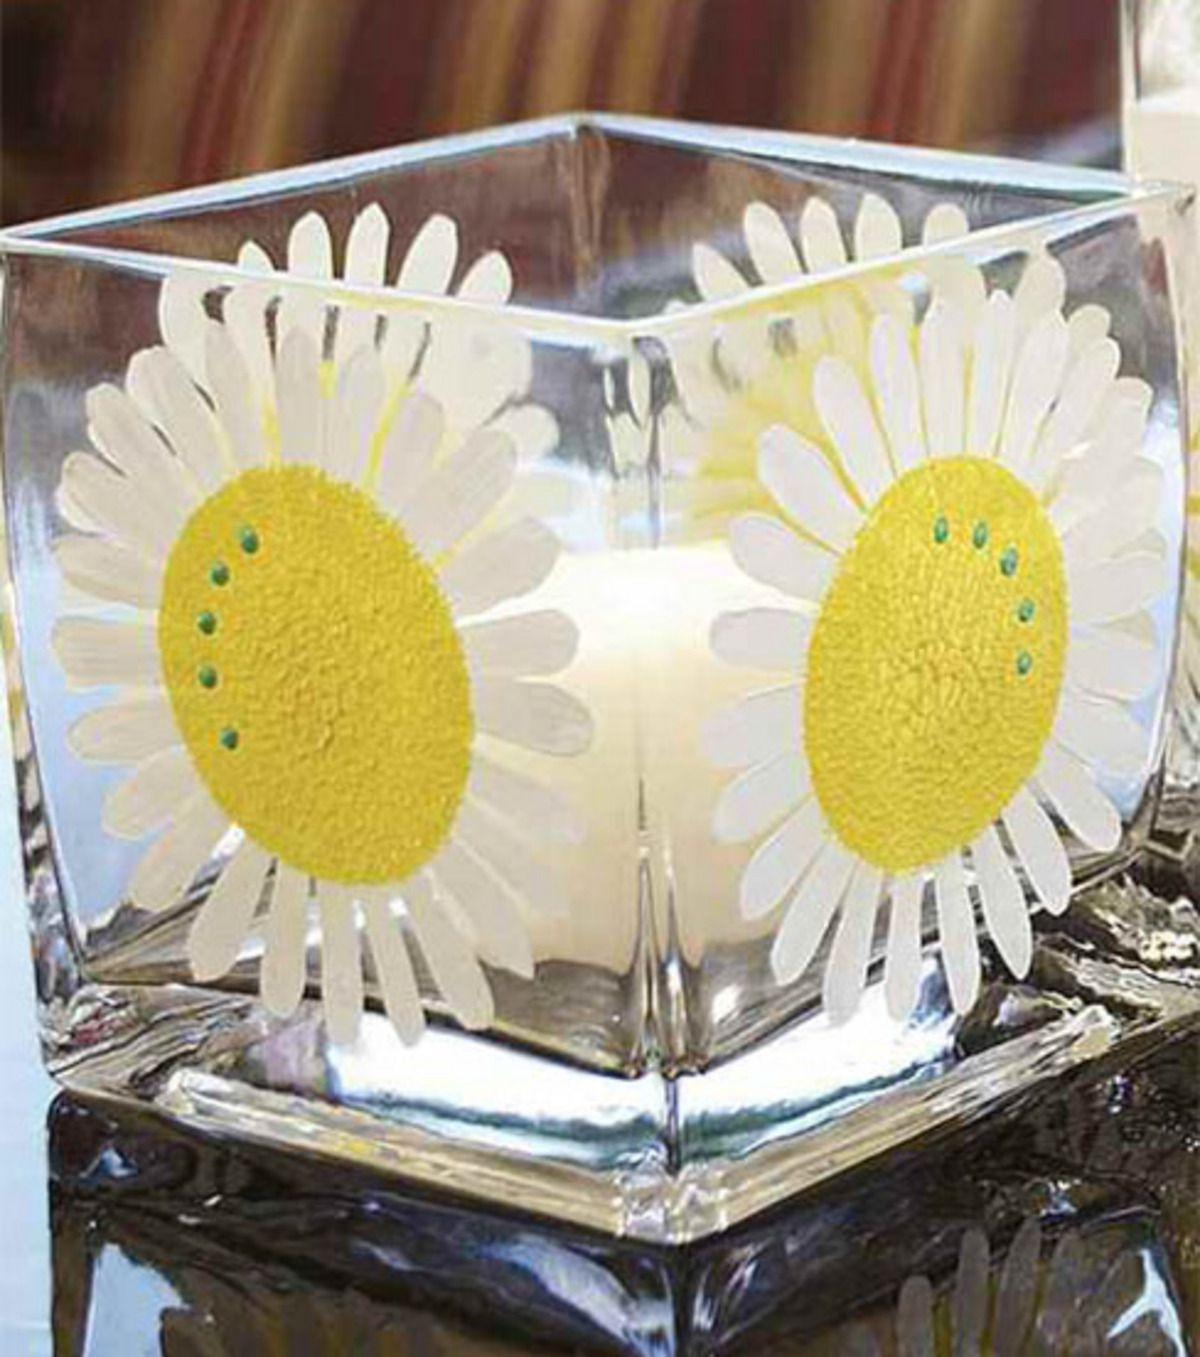 Jo Ann Fabrics And Crafts Mall: Create A Candle Holder For